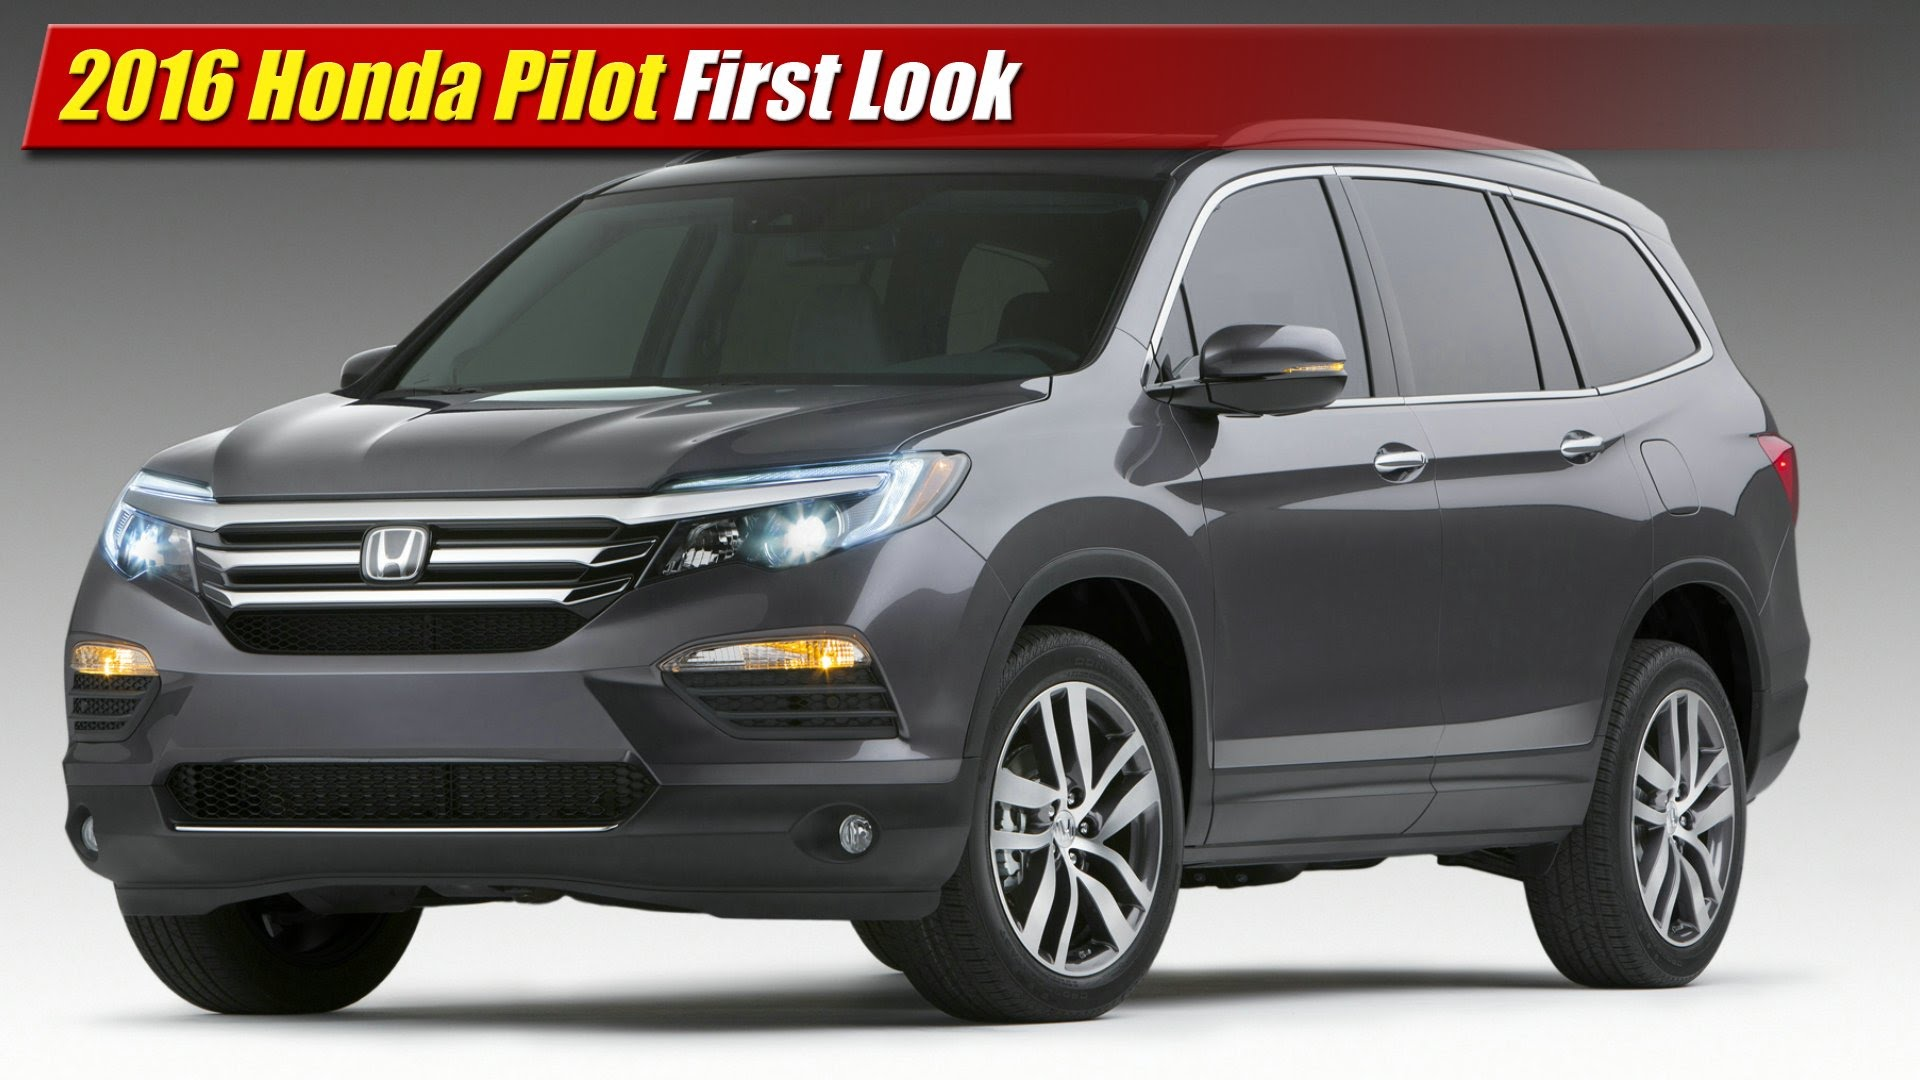 First Look 2016 Honda Pilot  TestDrivenTV